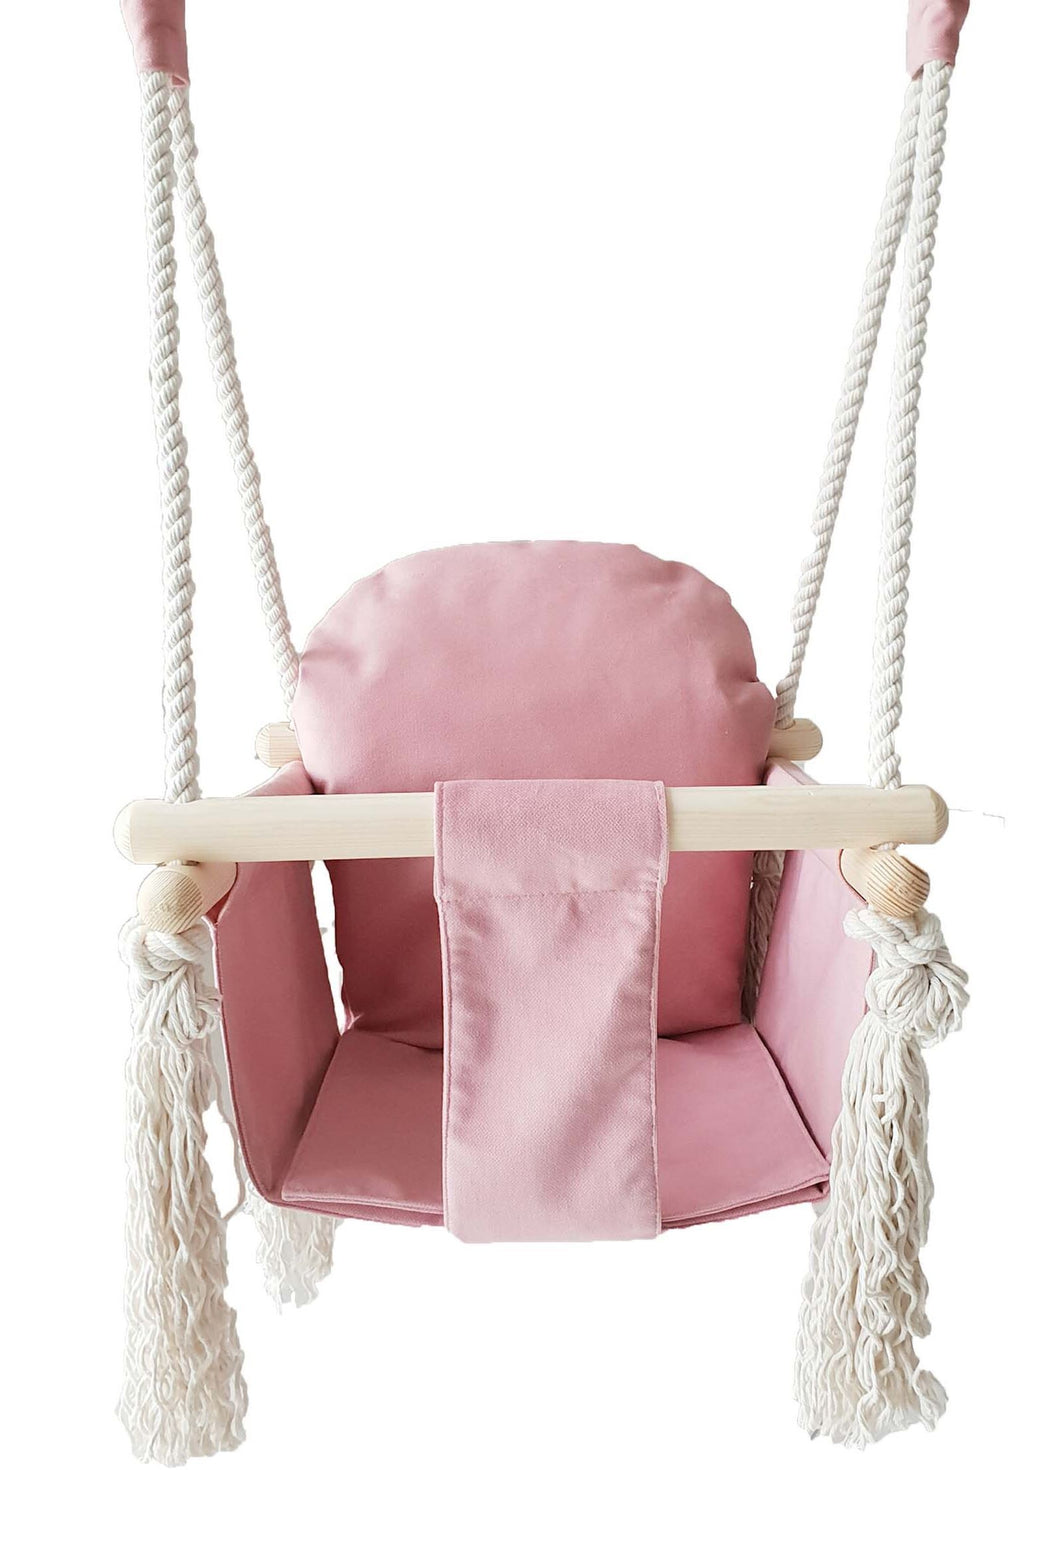 VELVET BUNNY WOODEN SWING - CANDY PINK